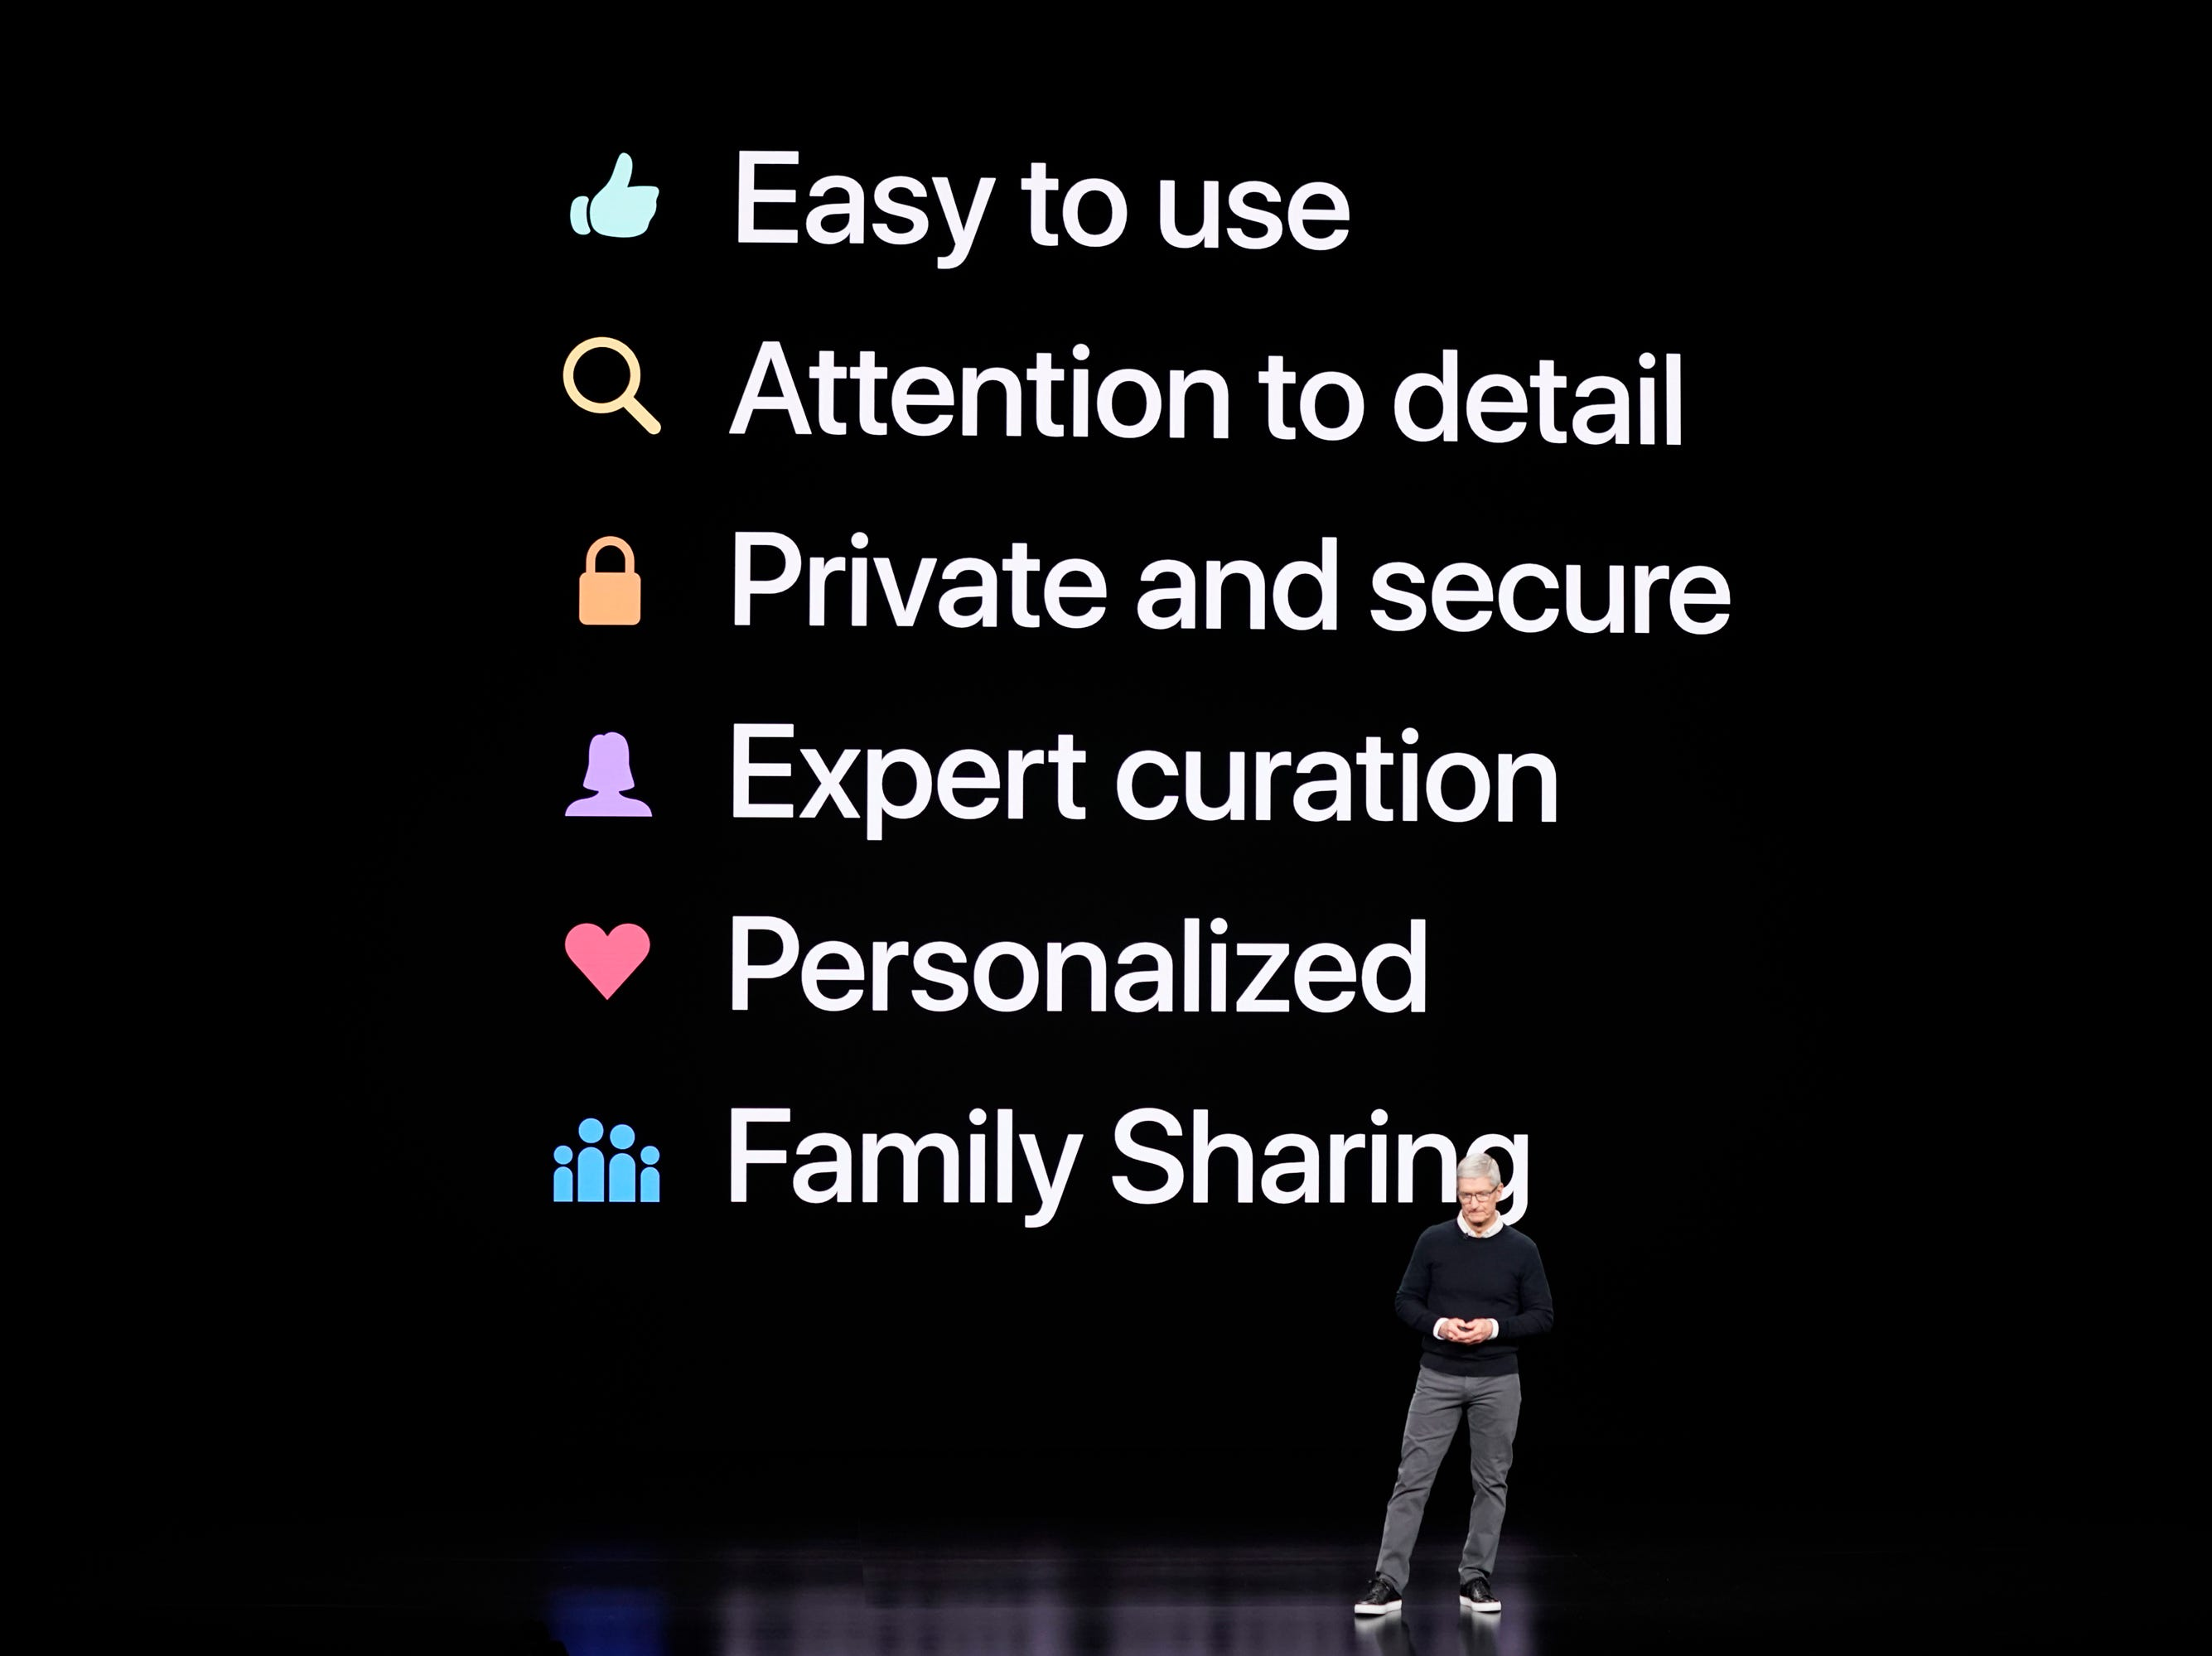 Apple CEO Tim Cook at the Steve Jobs Theater during an event to announce new products.